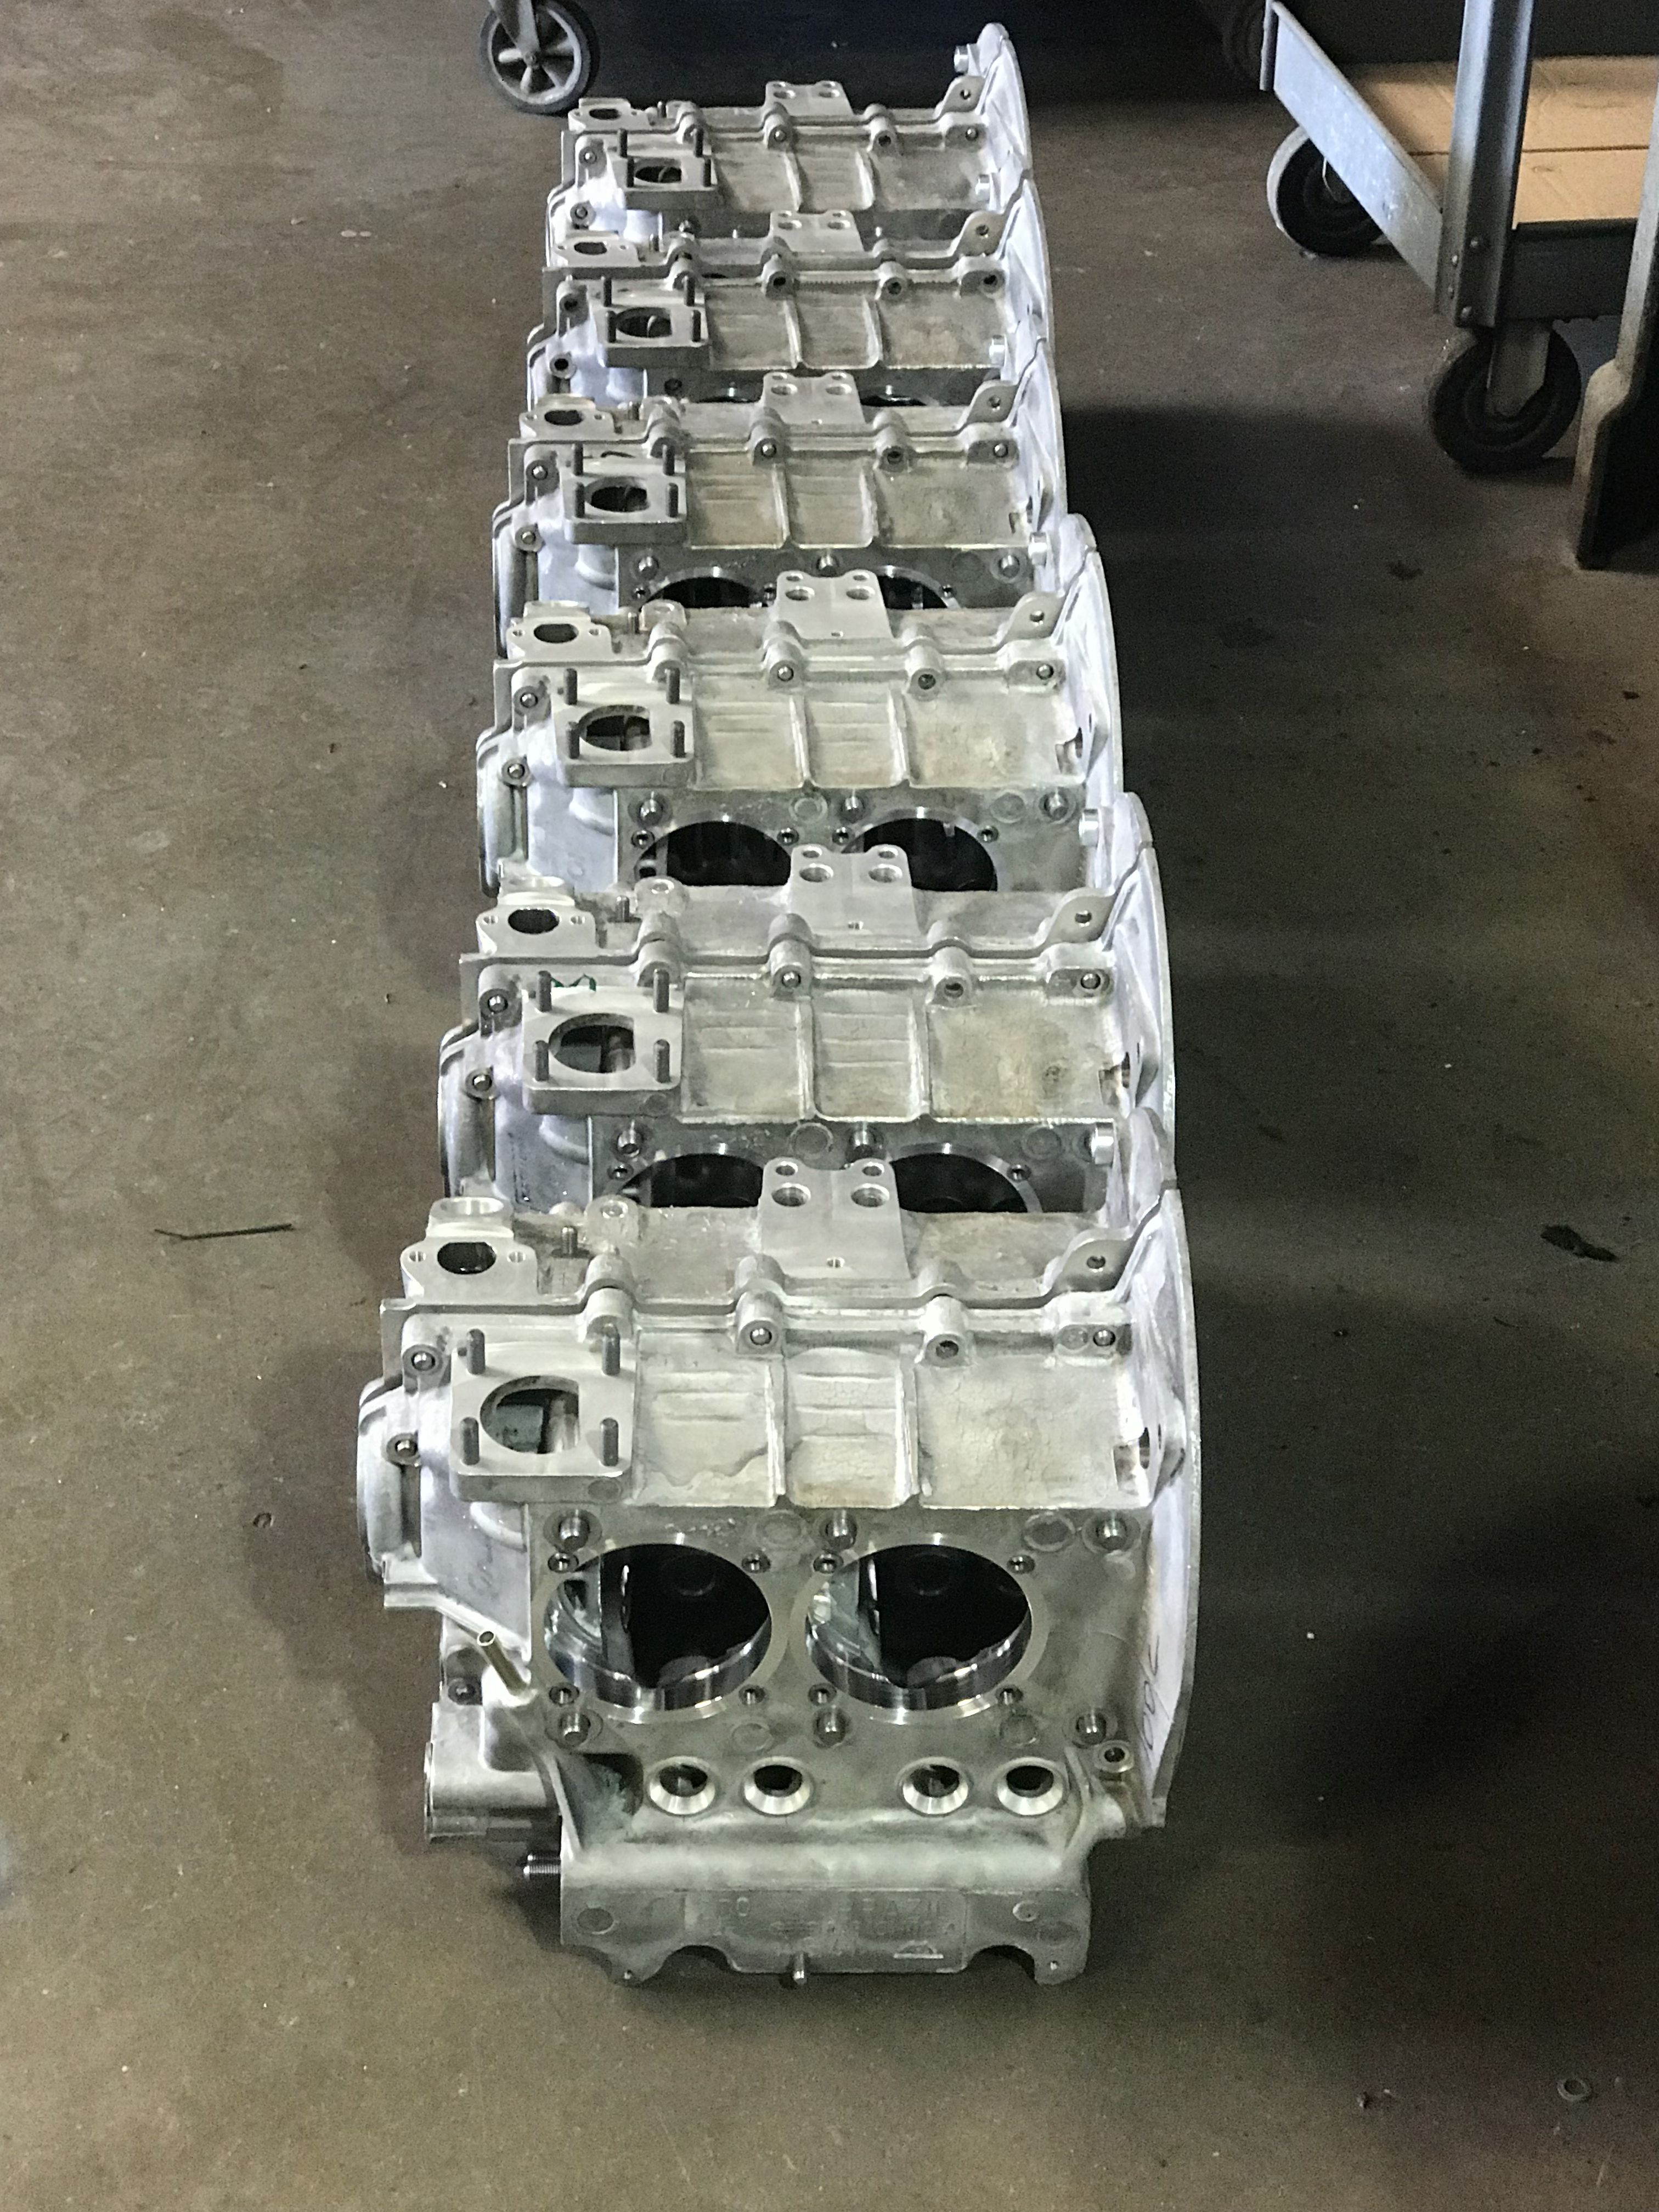 Rimco has been Machining Air Cooled components for over 47